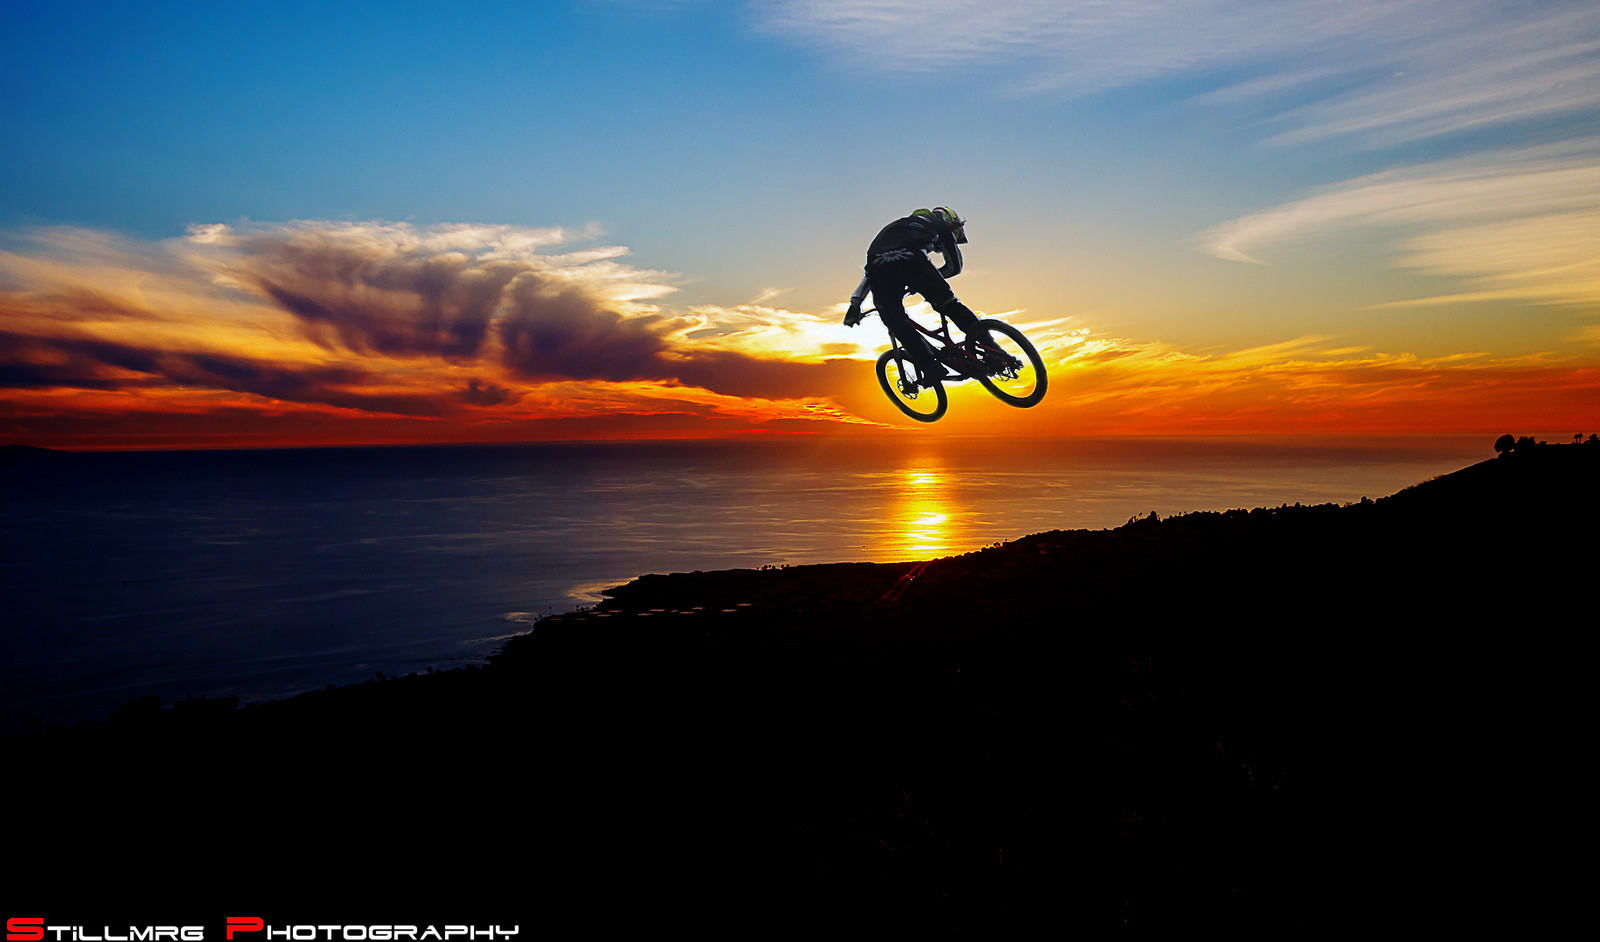 How I love Cal Sunset - Stillmrg Photography - Mountain Biking Pictures - Vital MTB